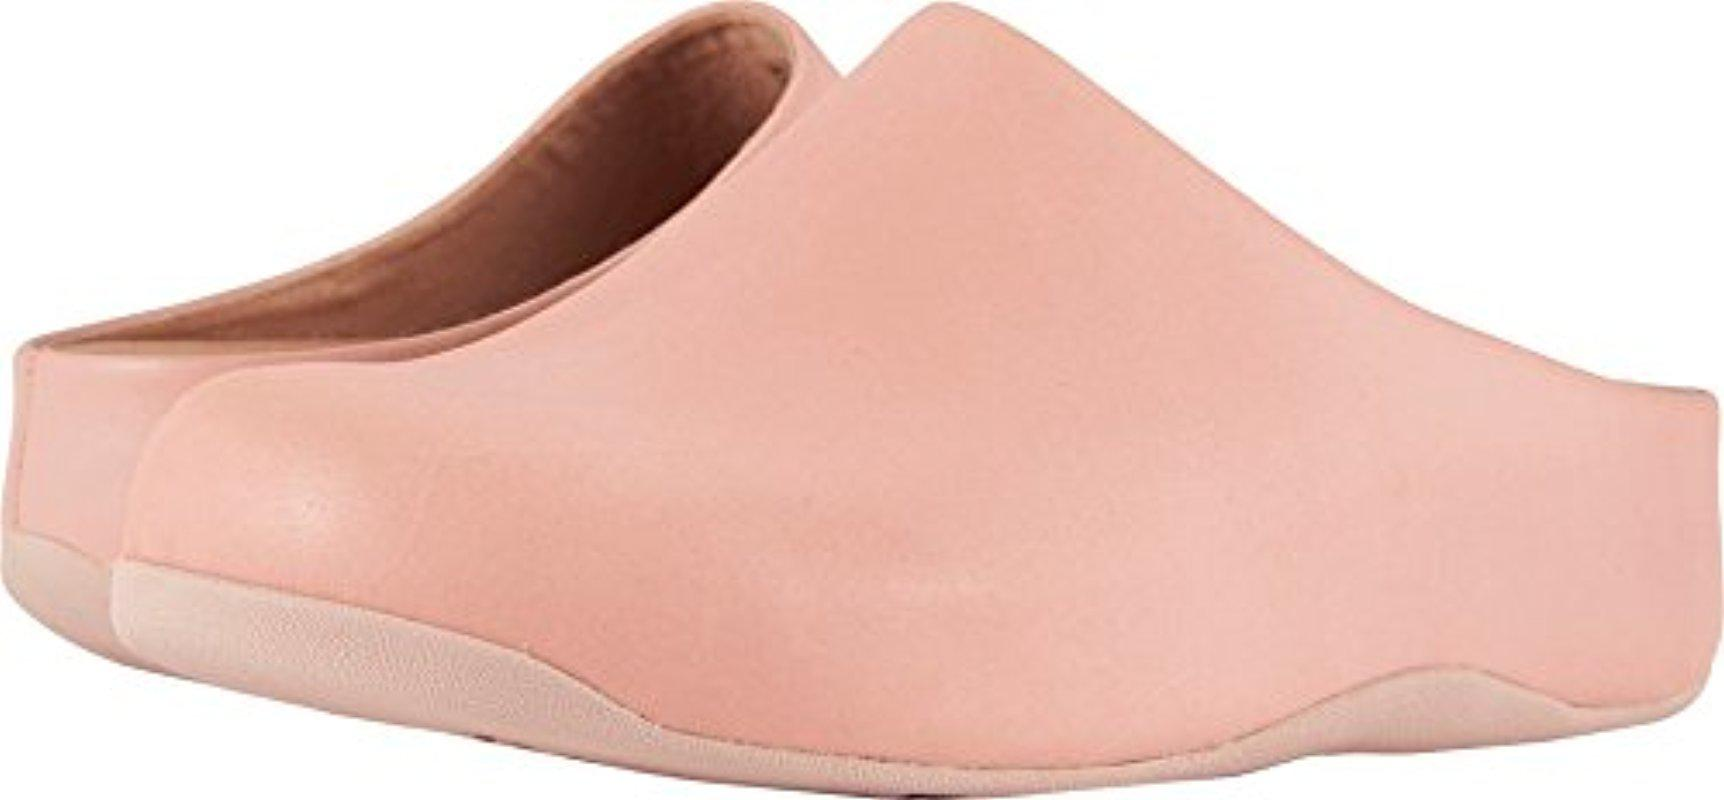 db4e04c20 Lyst fitflop shuv leather medical professional shoe in pink jpg 1724x800  Fit flops shuv